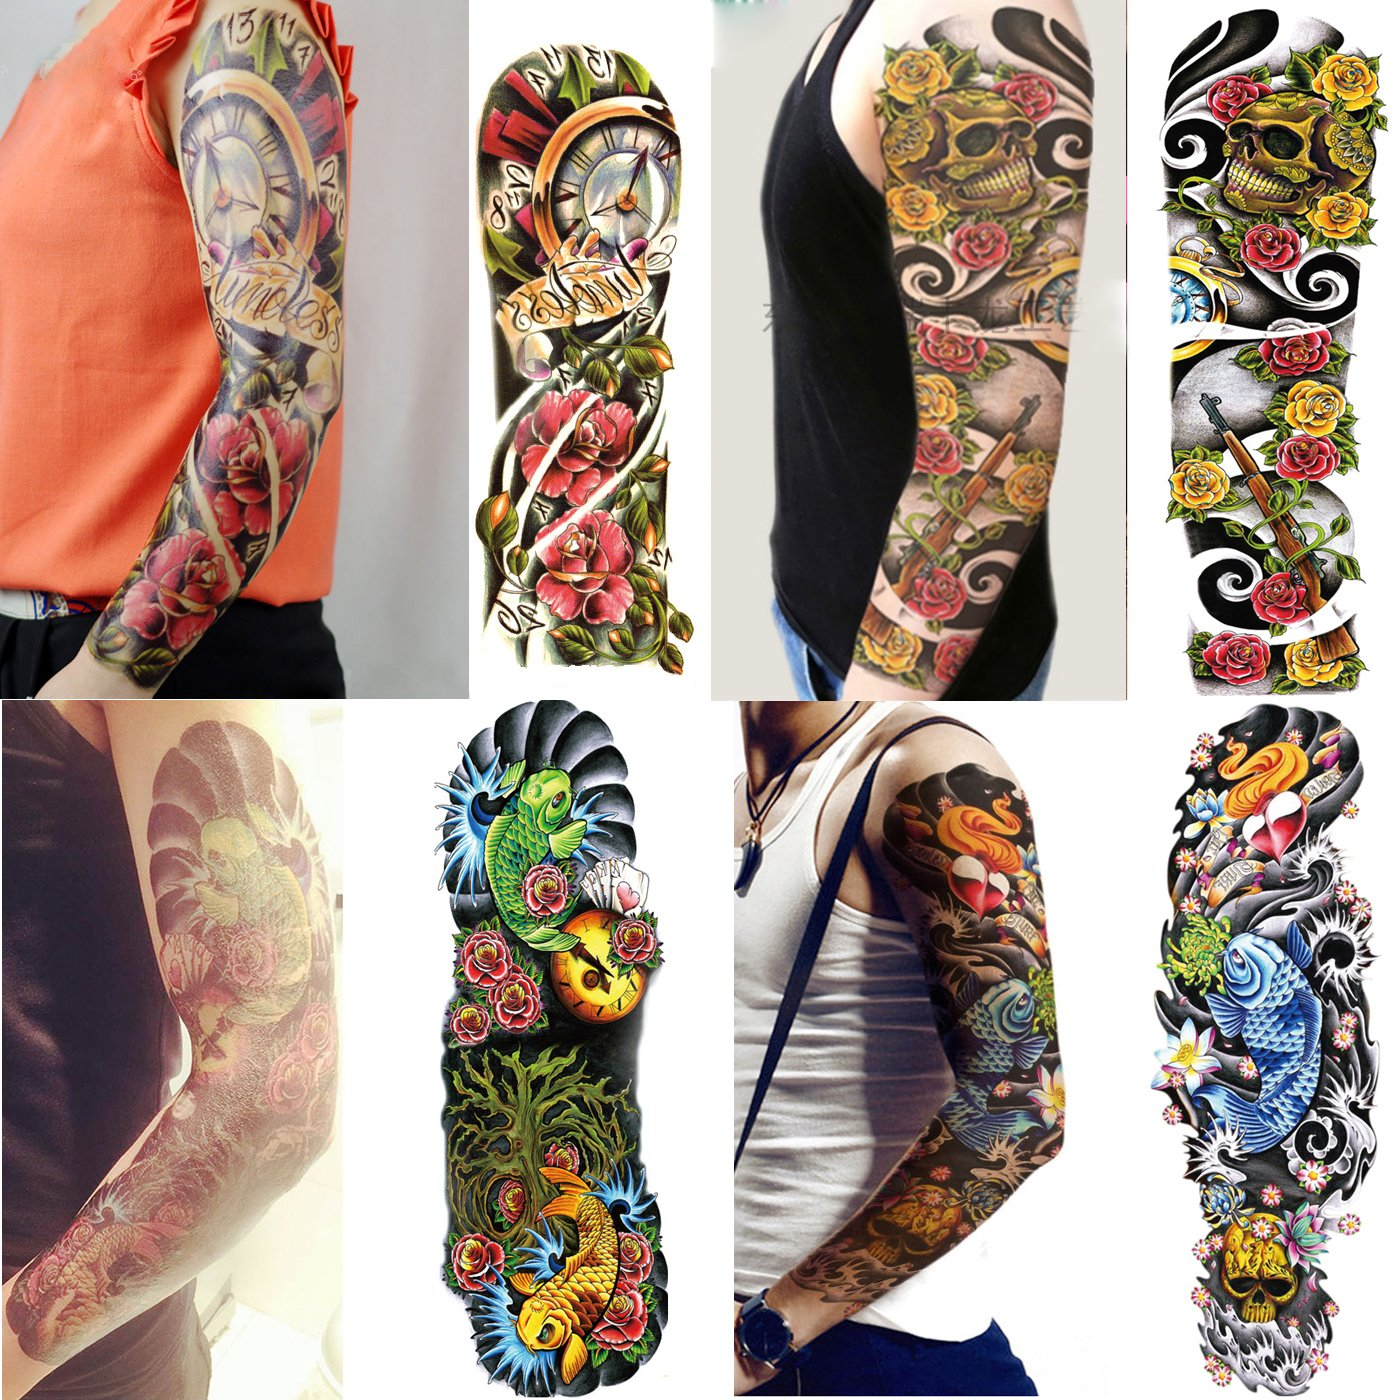 658e3cab1 Get Quotations · Kotbs 4 Sheets Full Arm Temporary Tattoo Waterproof Extra  Large Tattoos Sticker for Men Women Makeup